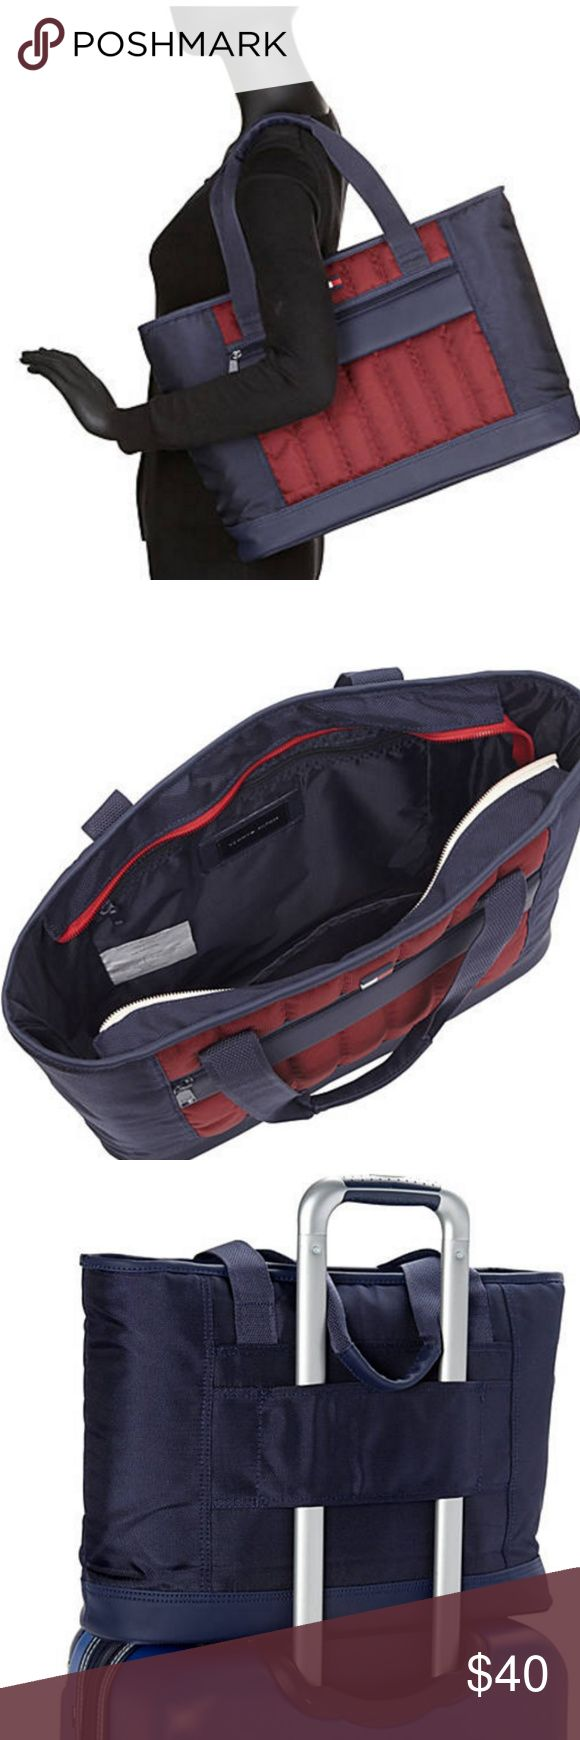 "Tommy Hilfiger Classic Sport 17"" Weekender Tote This 17"" Shopper Tote is a multi-functional bag that allows you to pack your clothes ion the flight and your towels and swimsuit to the beach. Introducing the Classic Sport 17"" Shopper Tote by Tommy Hilfiger.  Brand new, never used.  Very nice bag! Tommy Hilfiger Bags Travel Bags"